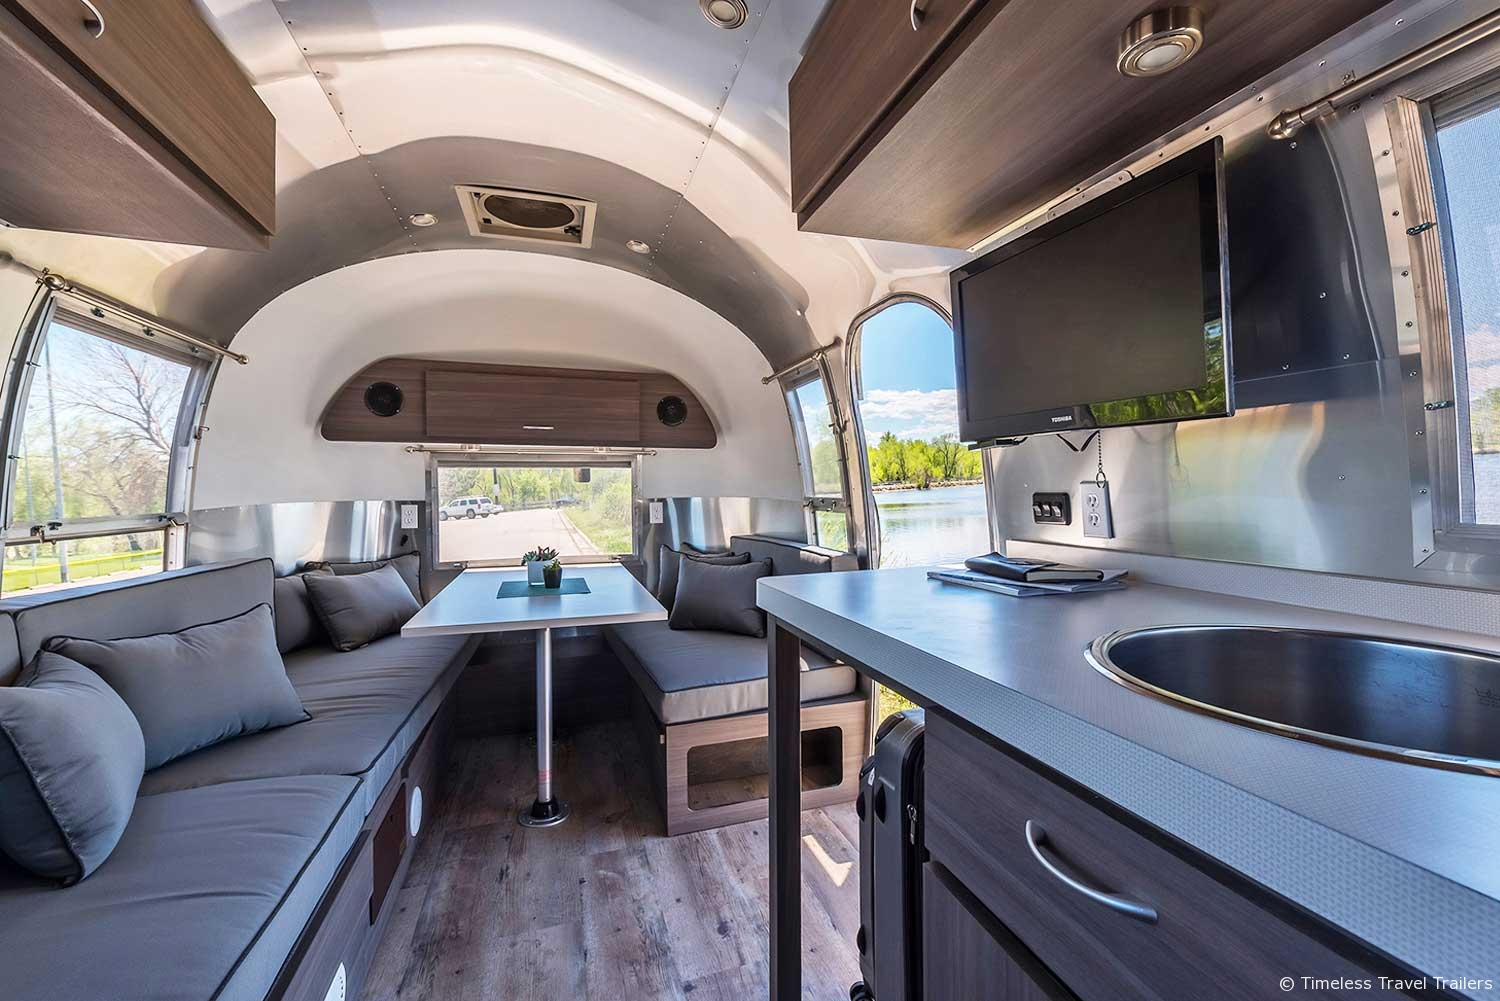 Timeless Travel Trailers Airstream S Most Experienced